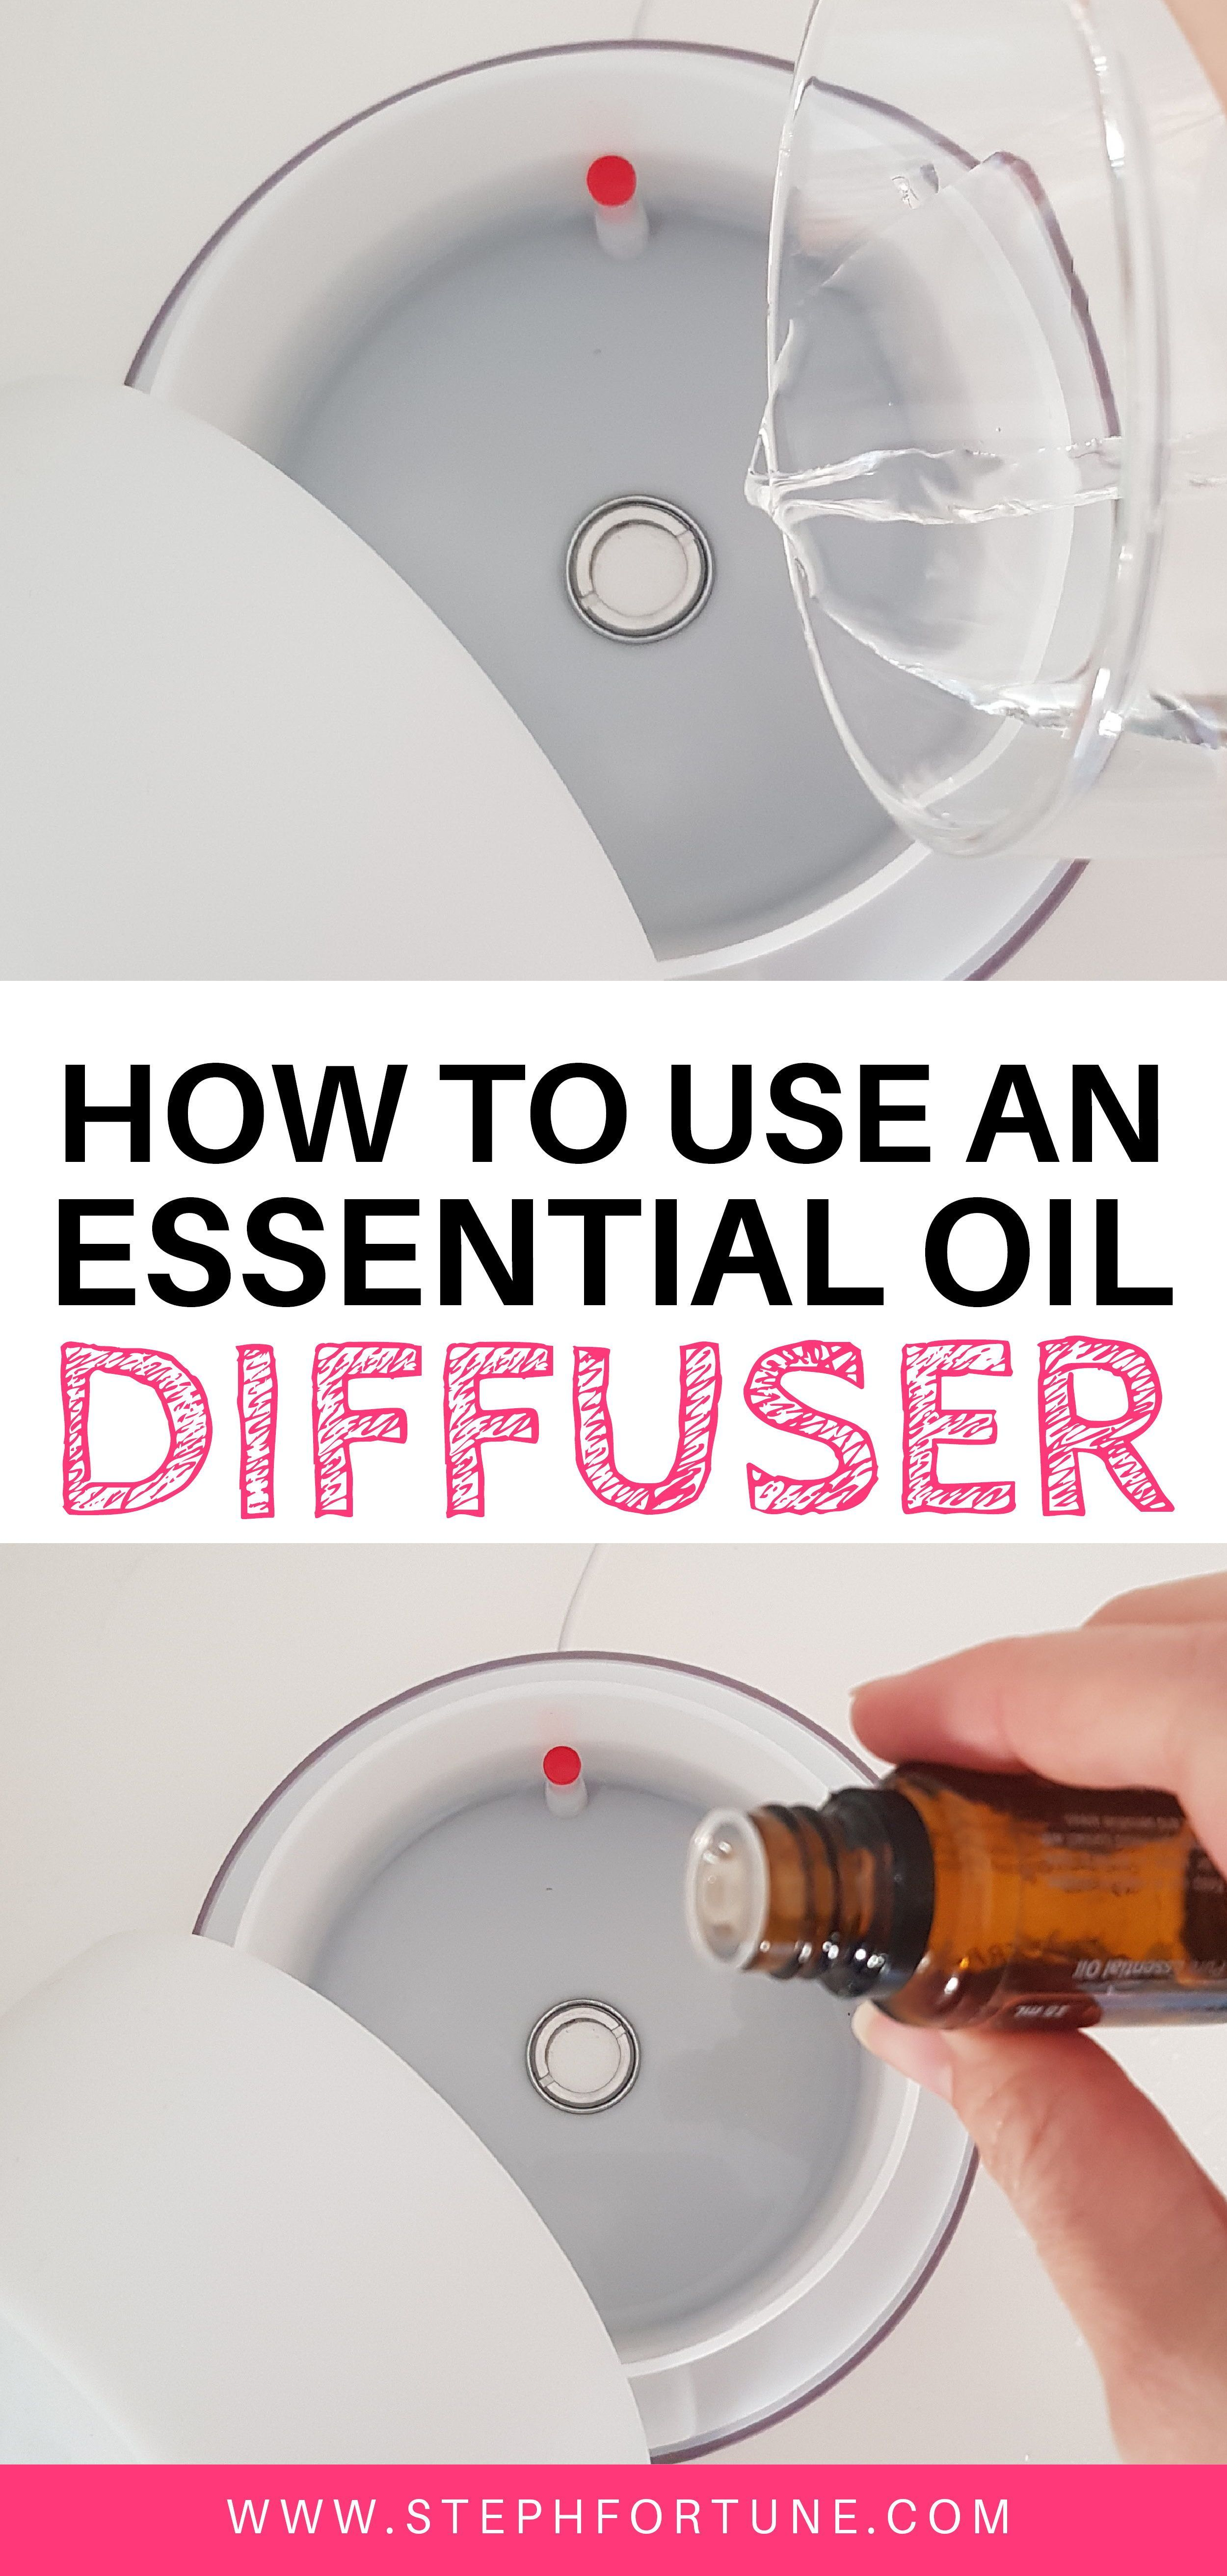 to Use an Diffuser with Essential oils (Diffusing 101) How to Use an Essential Oil Diffuser  * Why diffuse? * How long for? * How many drops? * How do i use it? * Diffuser blends How to Use an Essential Oil Diffuser  * Why diffuse? * How long for? * How many drops? * How do i use it? * Diffuser blends